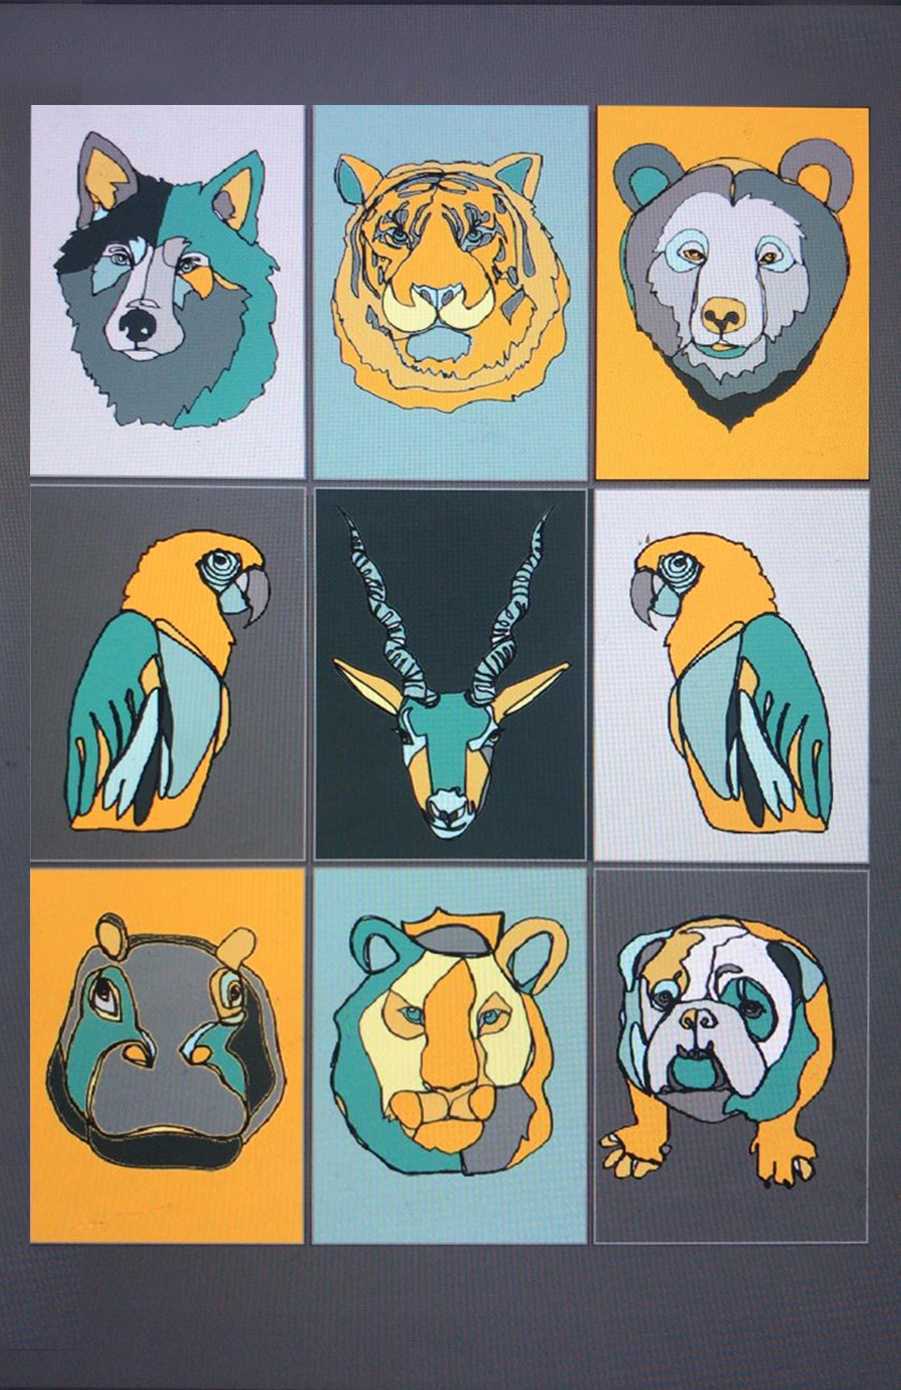 A Selection of Artist KC's Animal images